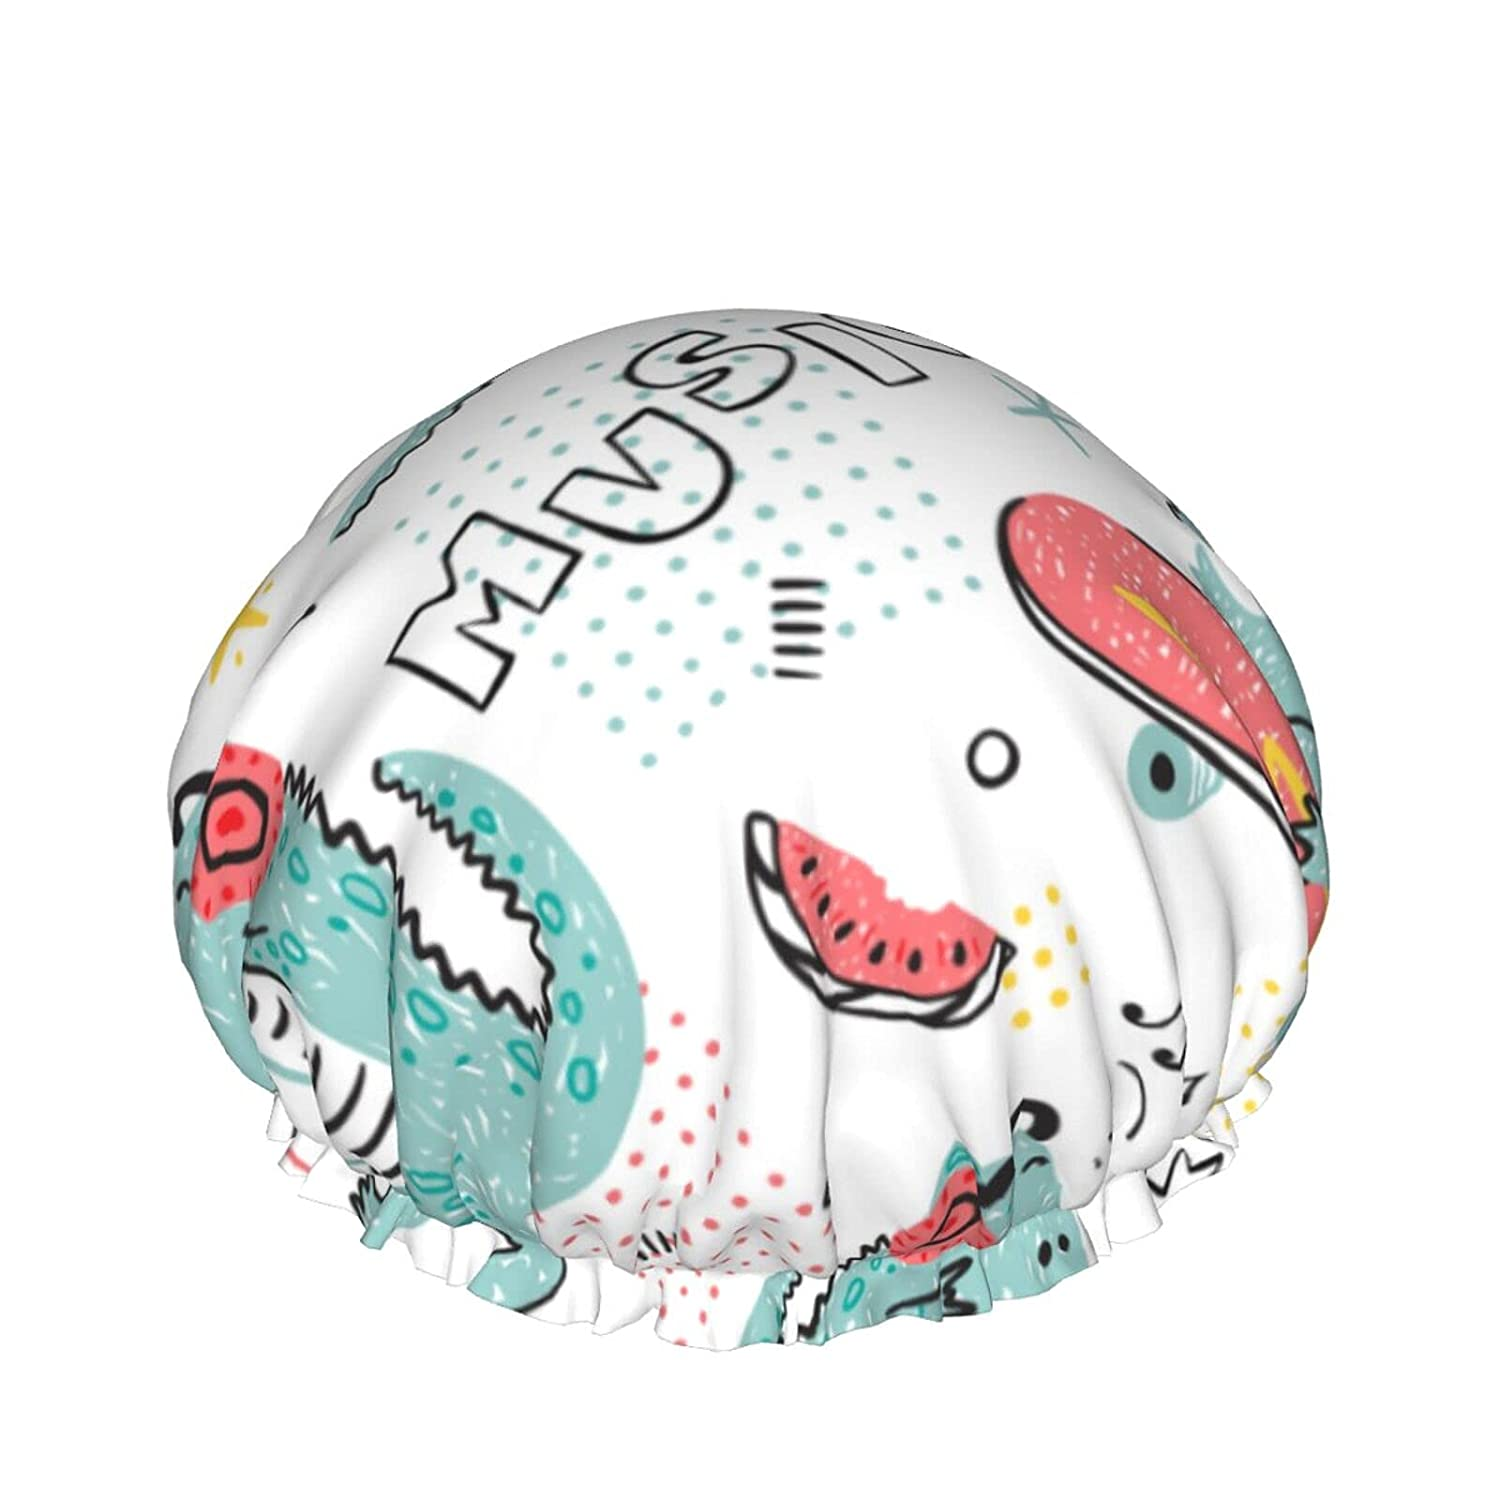 Double Layers Shower Purchase Cap Music Dinosaur Backgroun Lover Childish Quality inspection